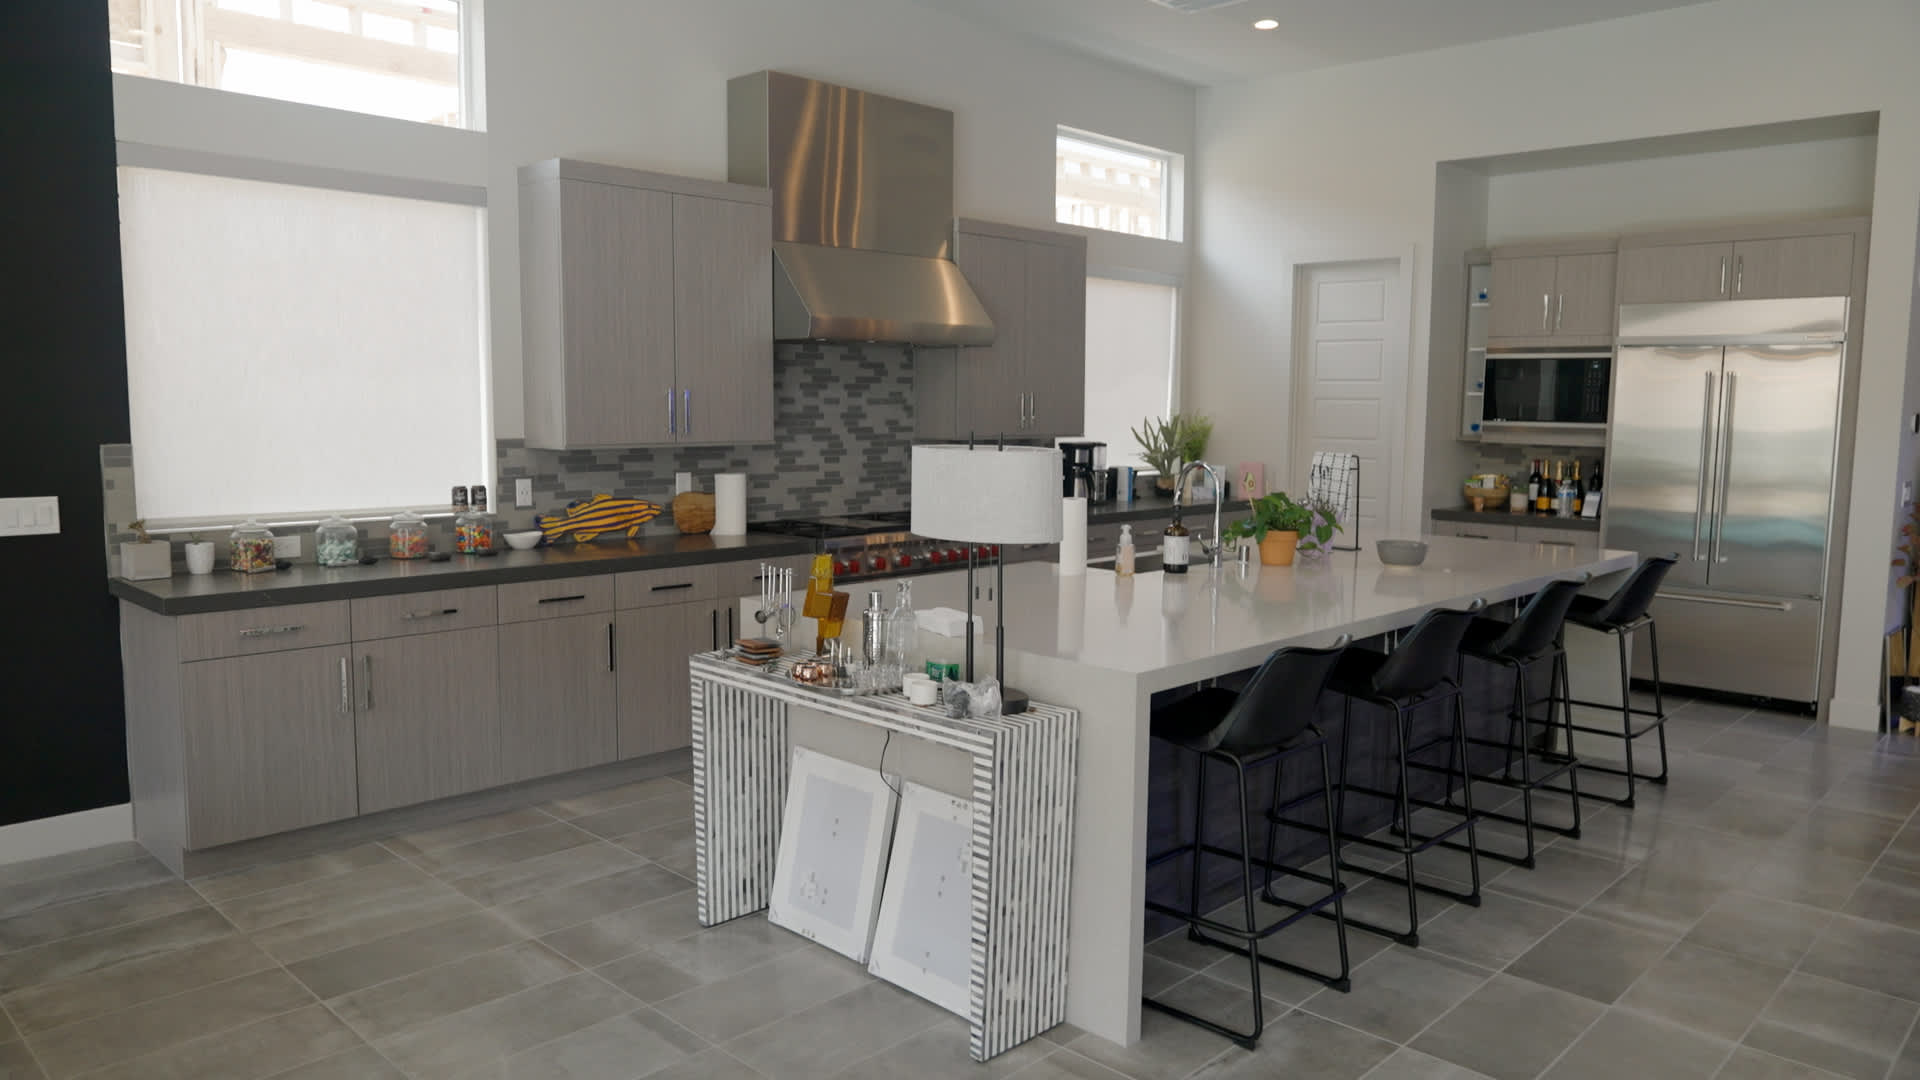 Graham Stephan bought his $1.4 million home without knowing what his finished kitchen would look like.